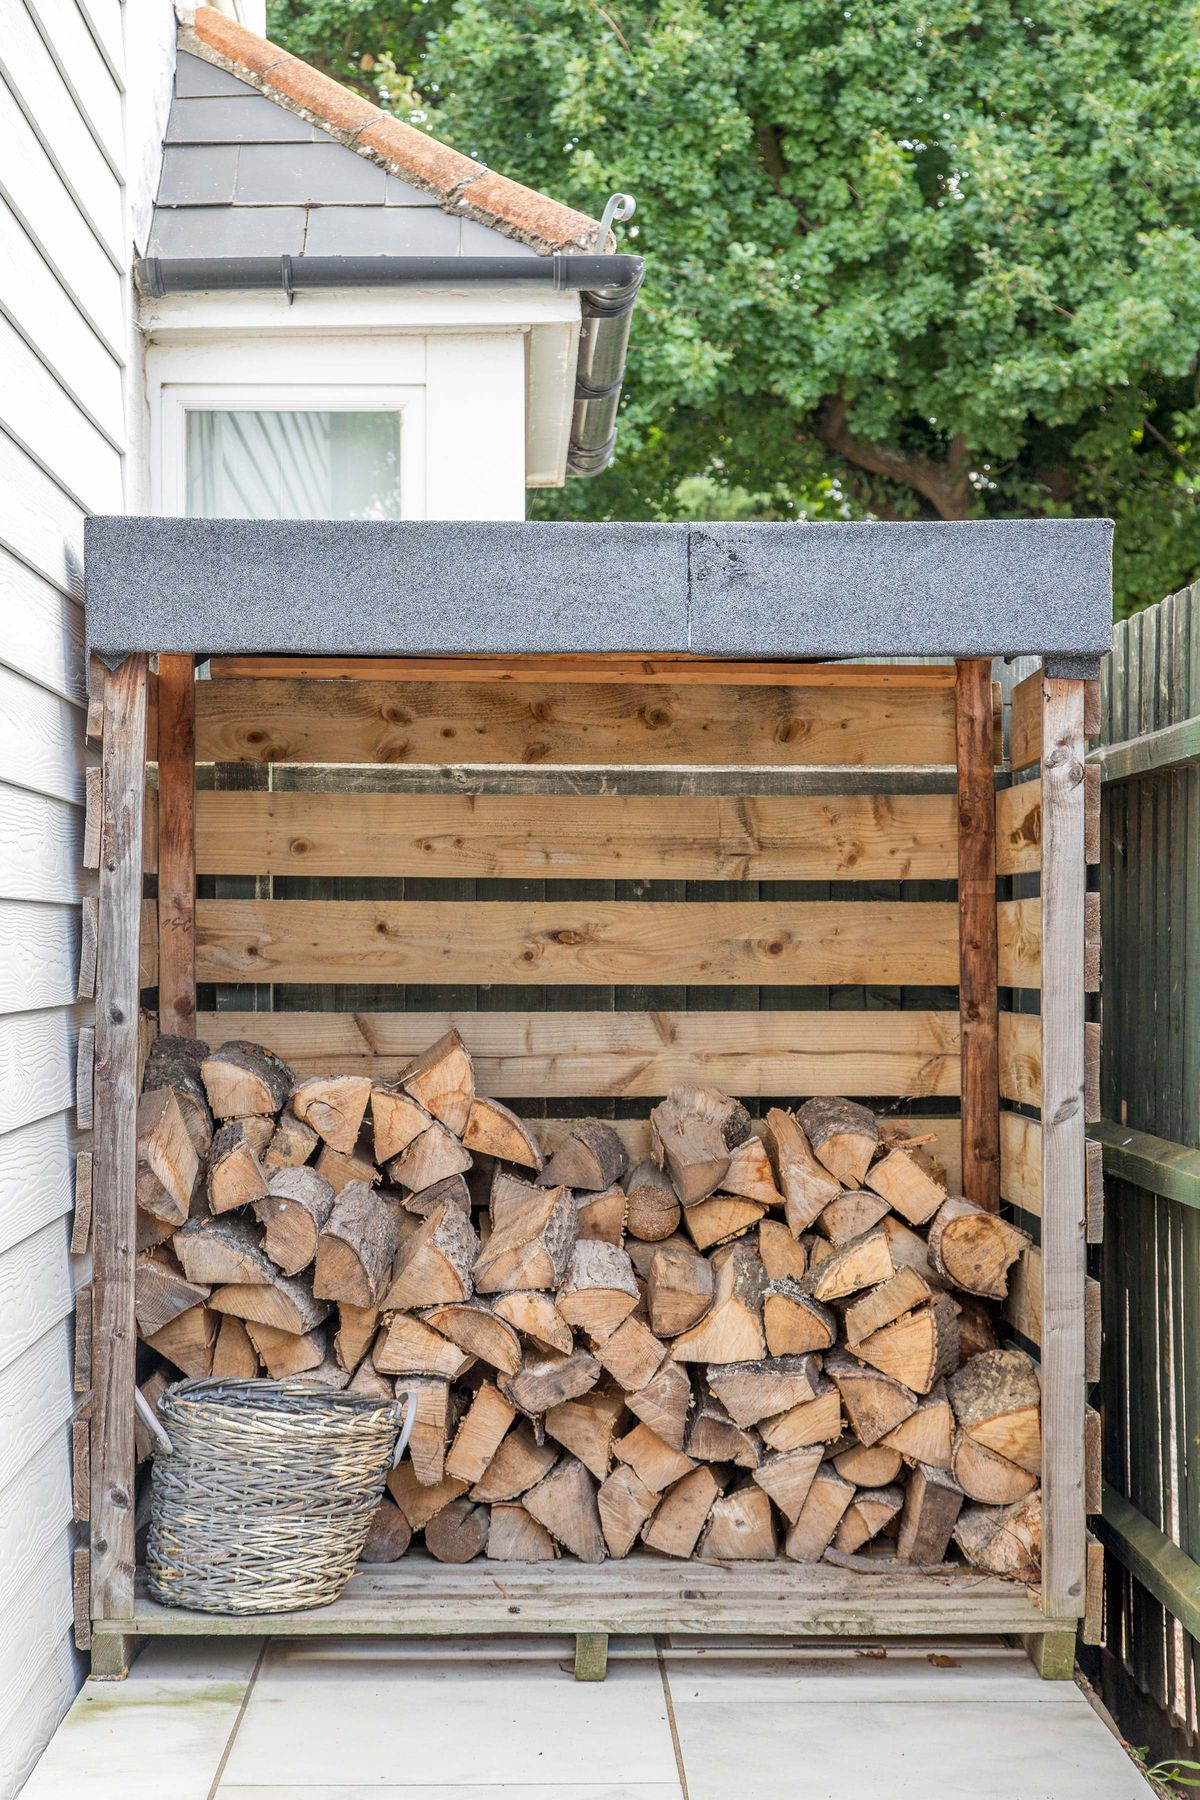 A firewood storage unit made of recycled pallet wood.